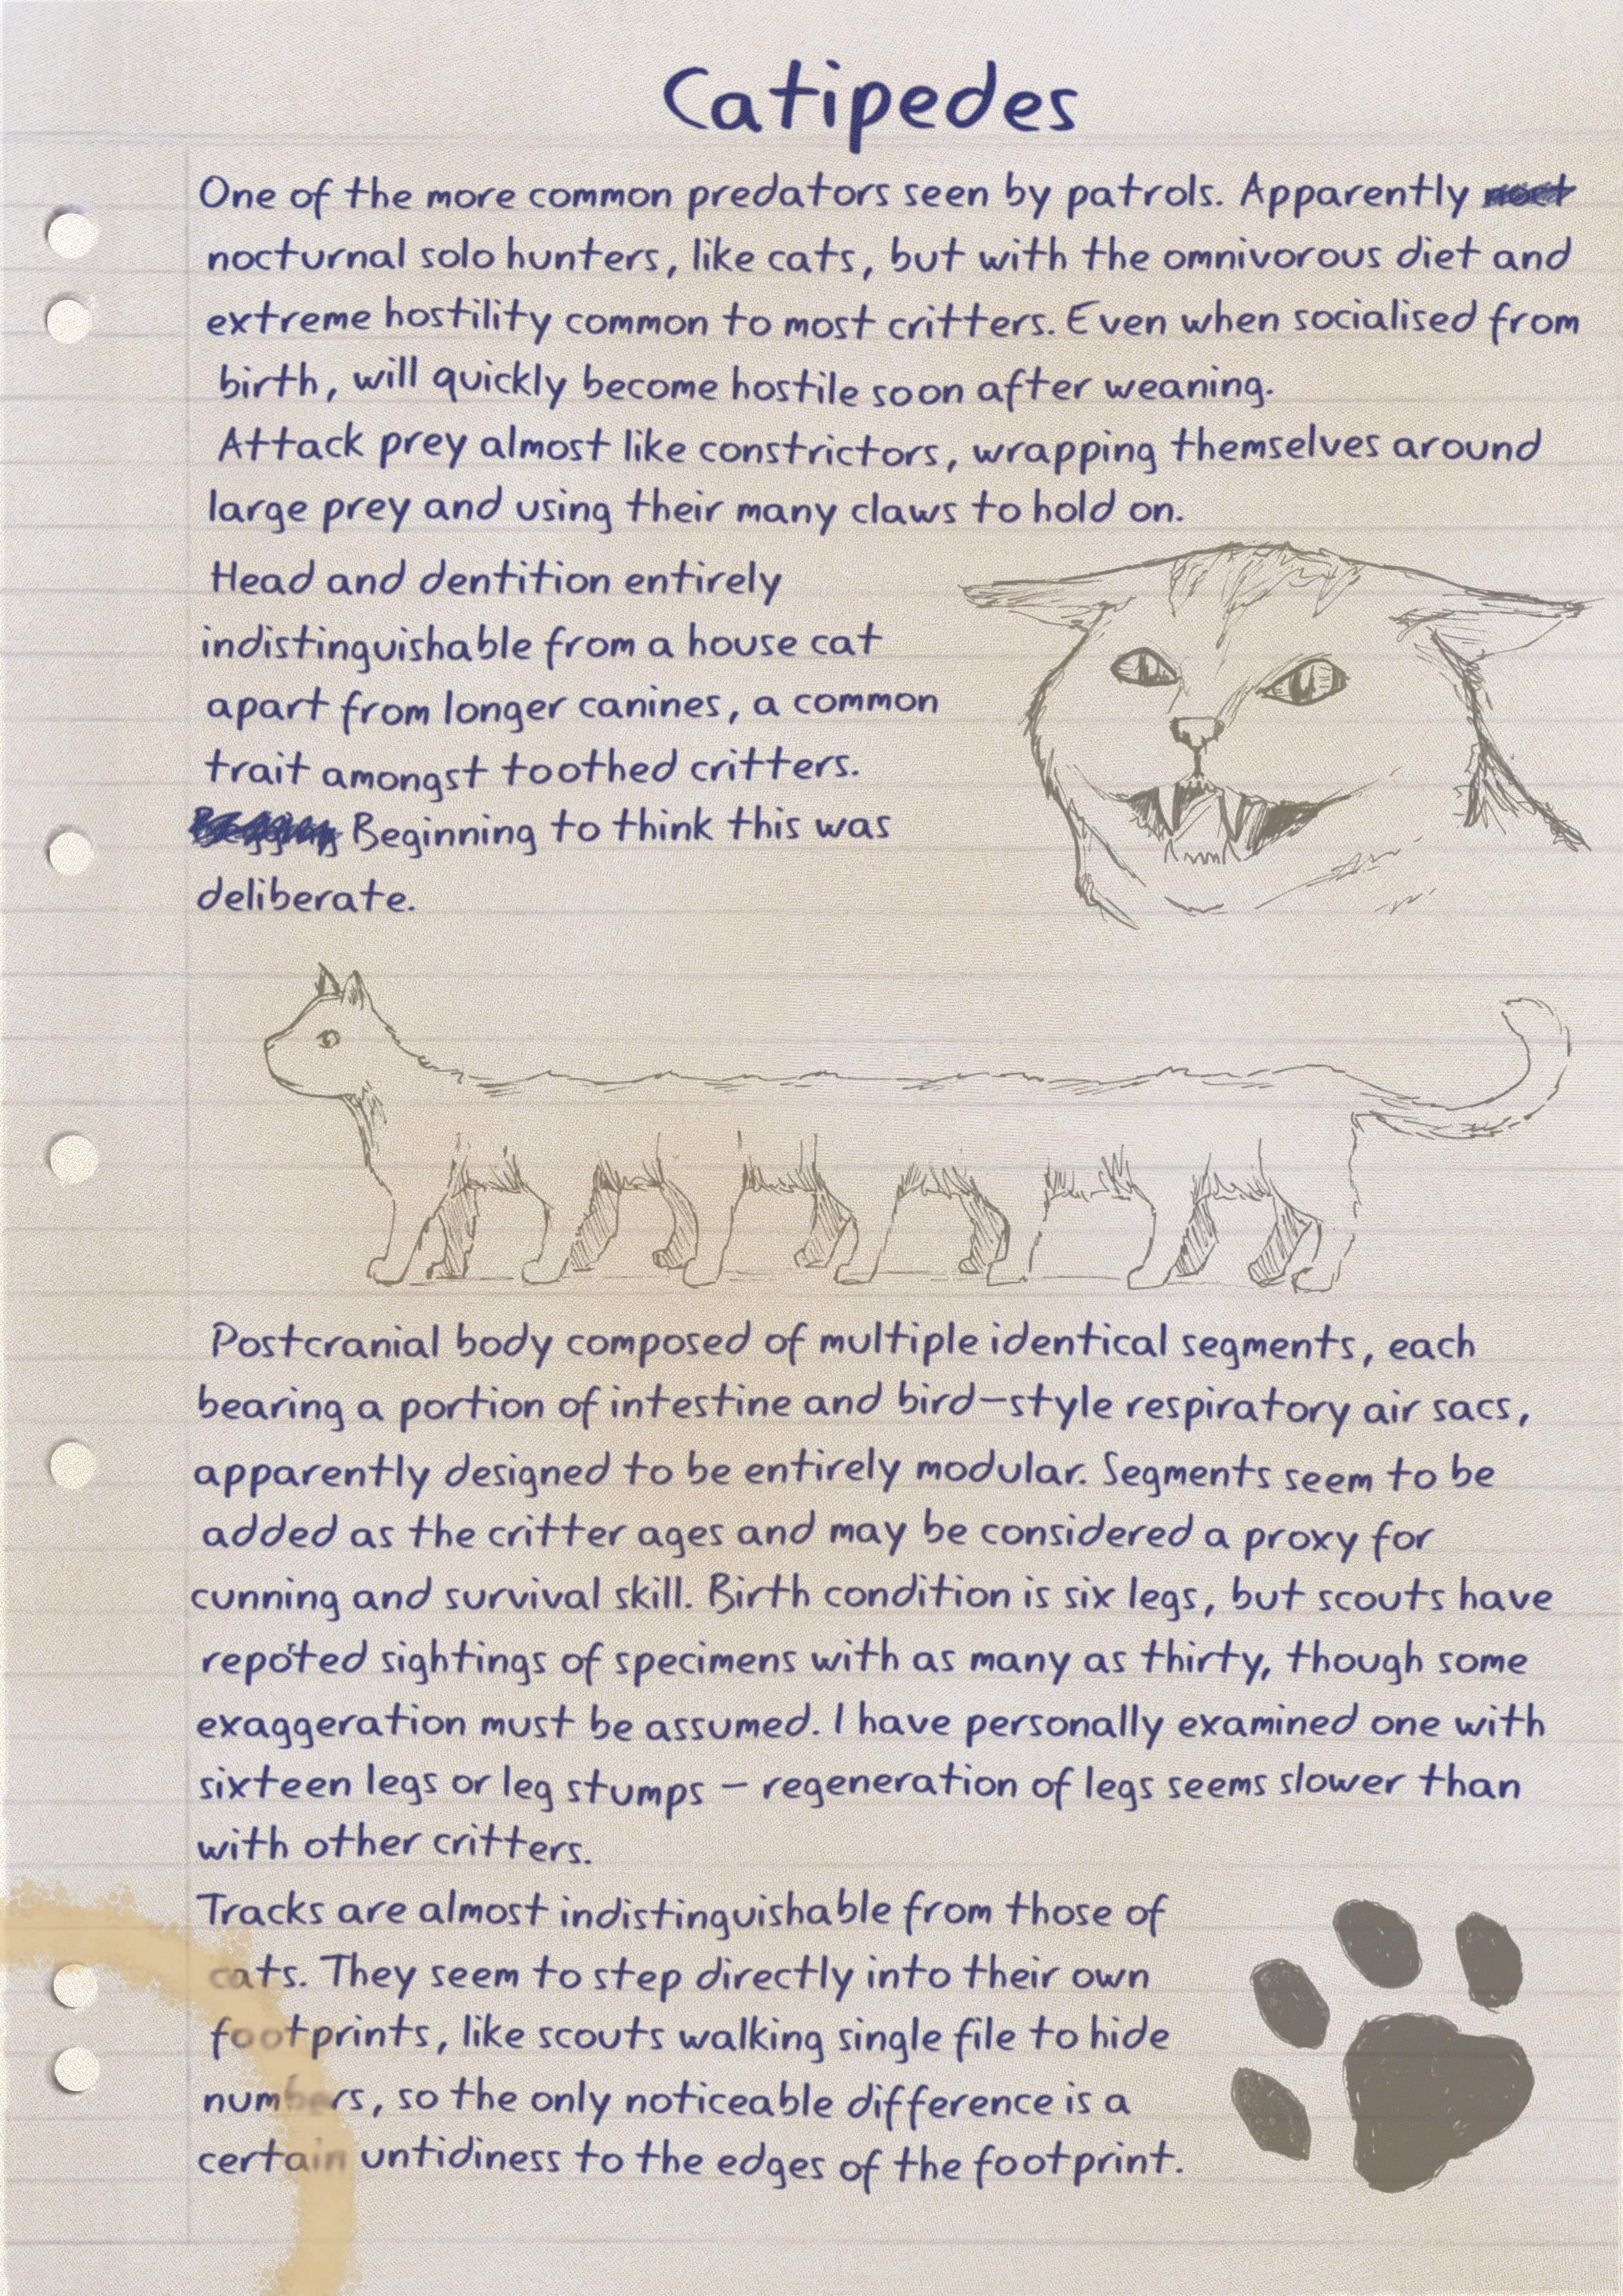 A grimy and stained page of notes on refill. Click for text version and description.